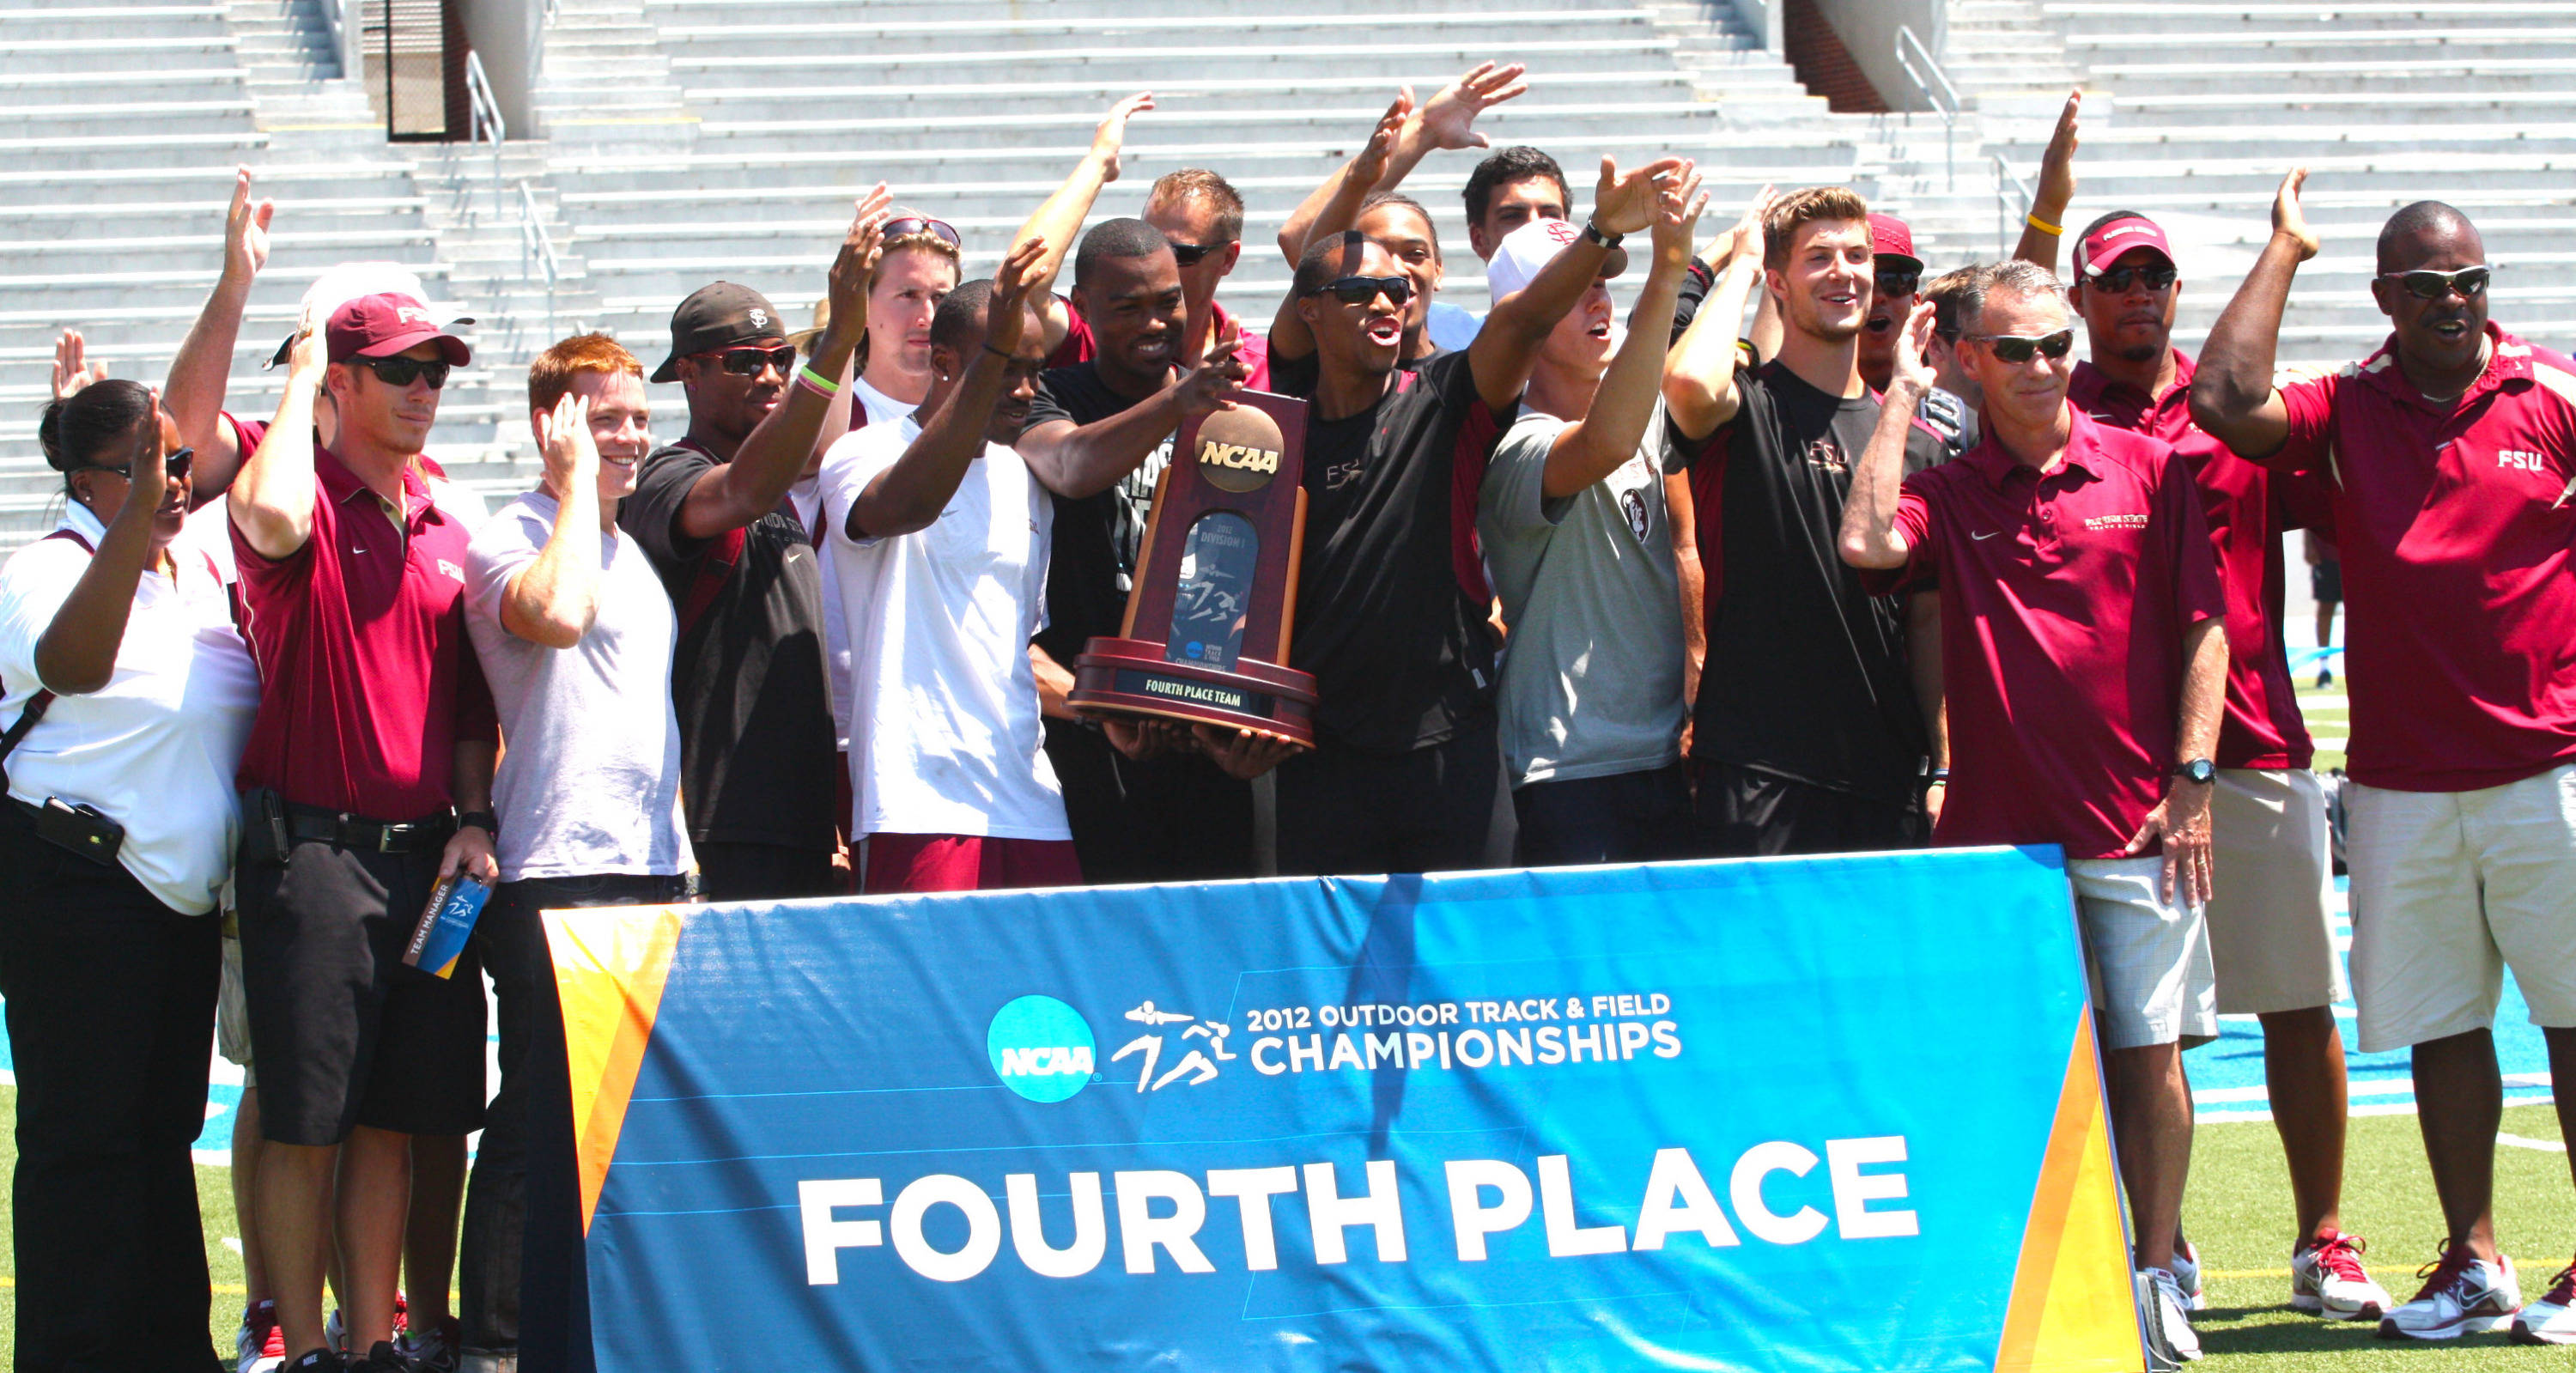 FSU men's track team chops it up after finishing fourth in 2012